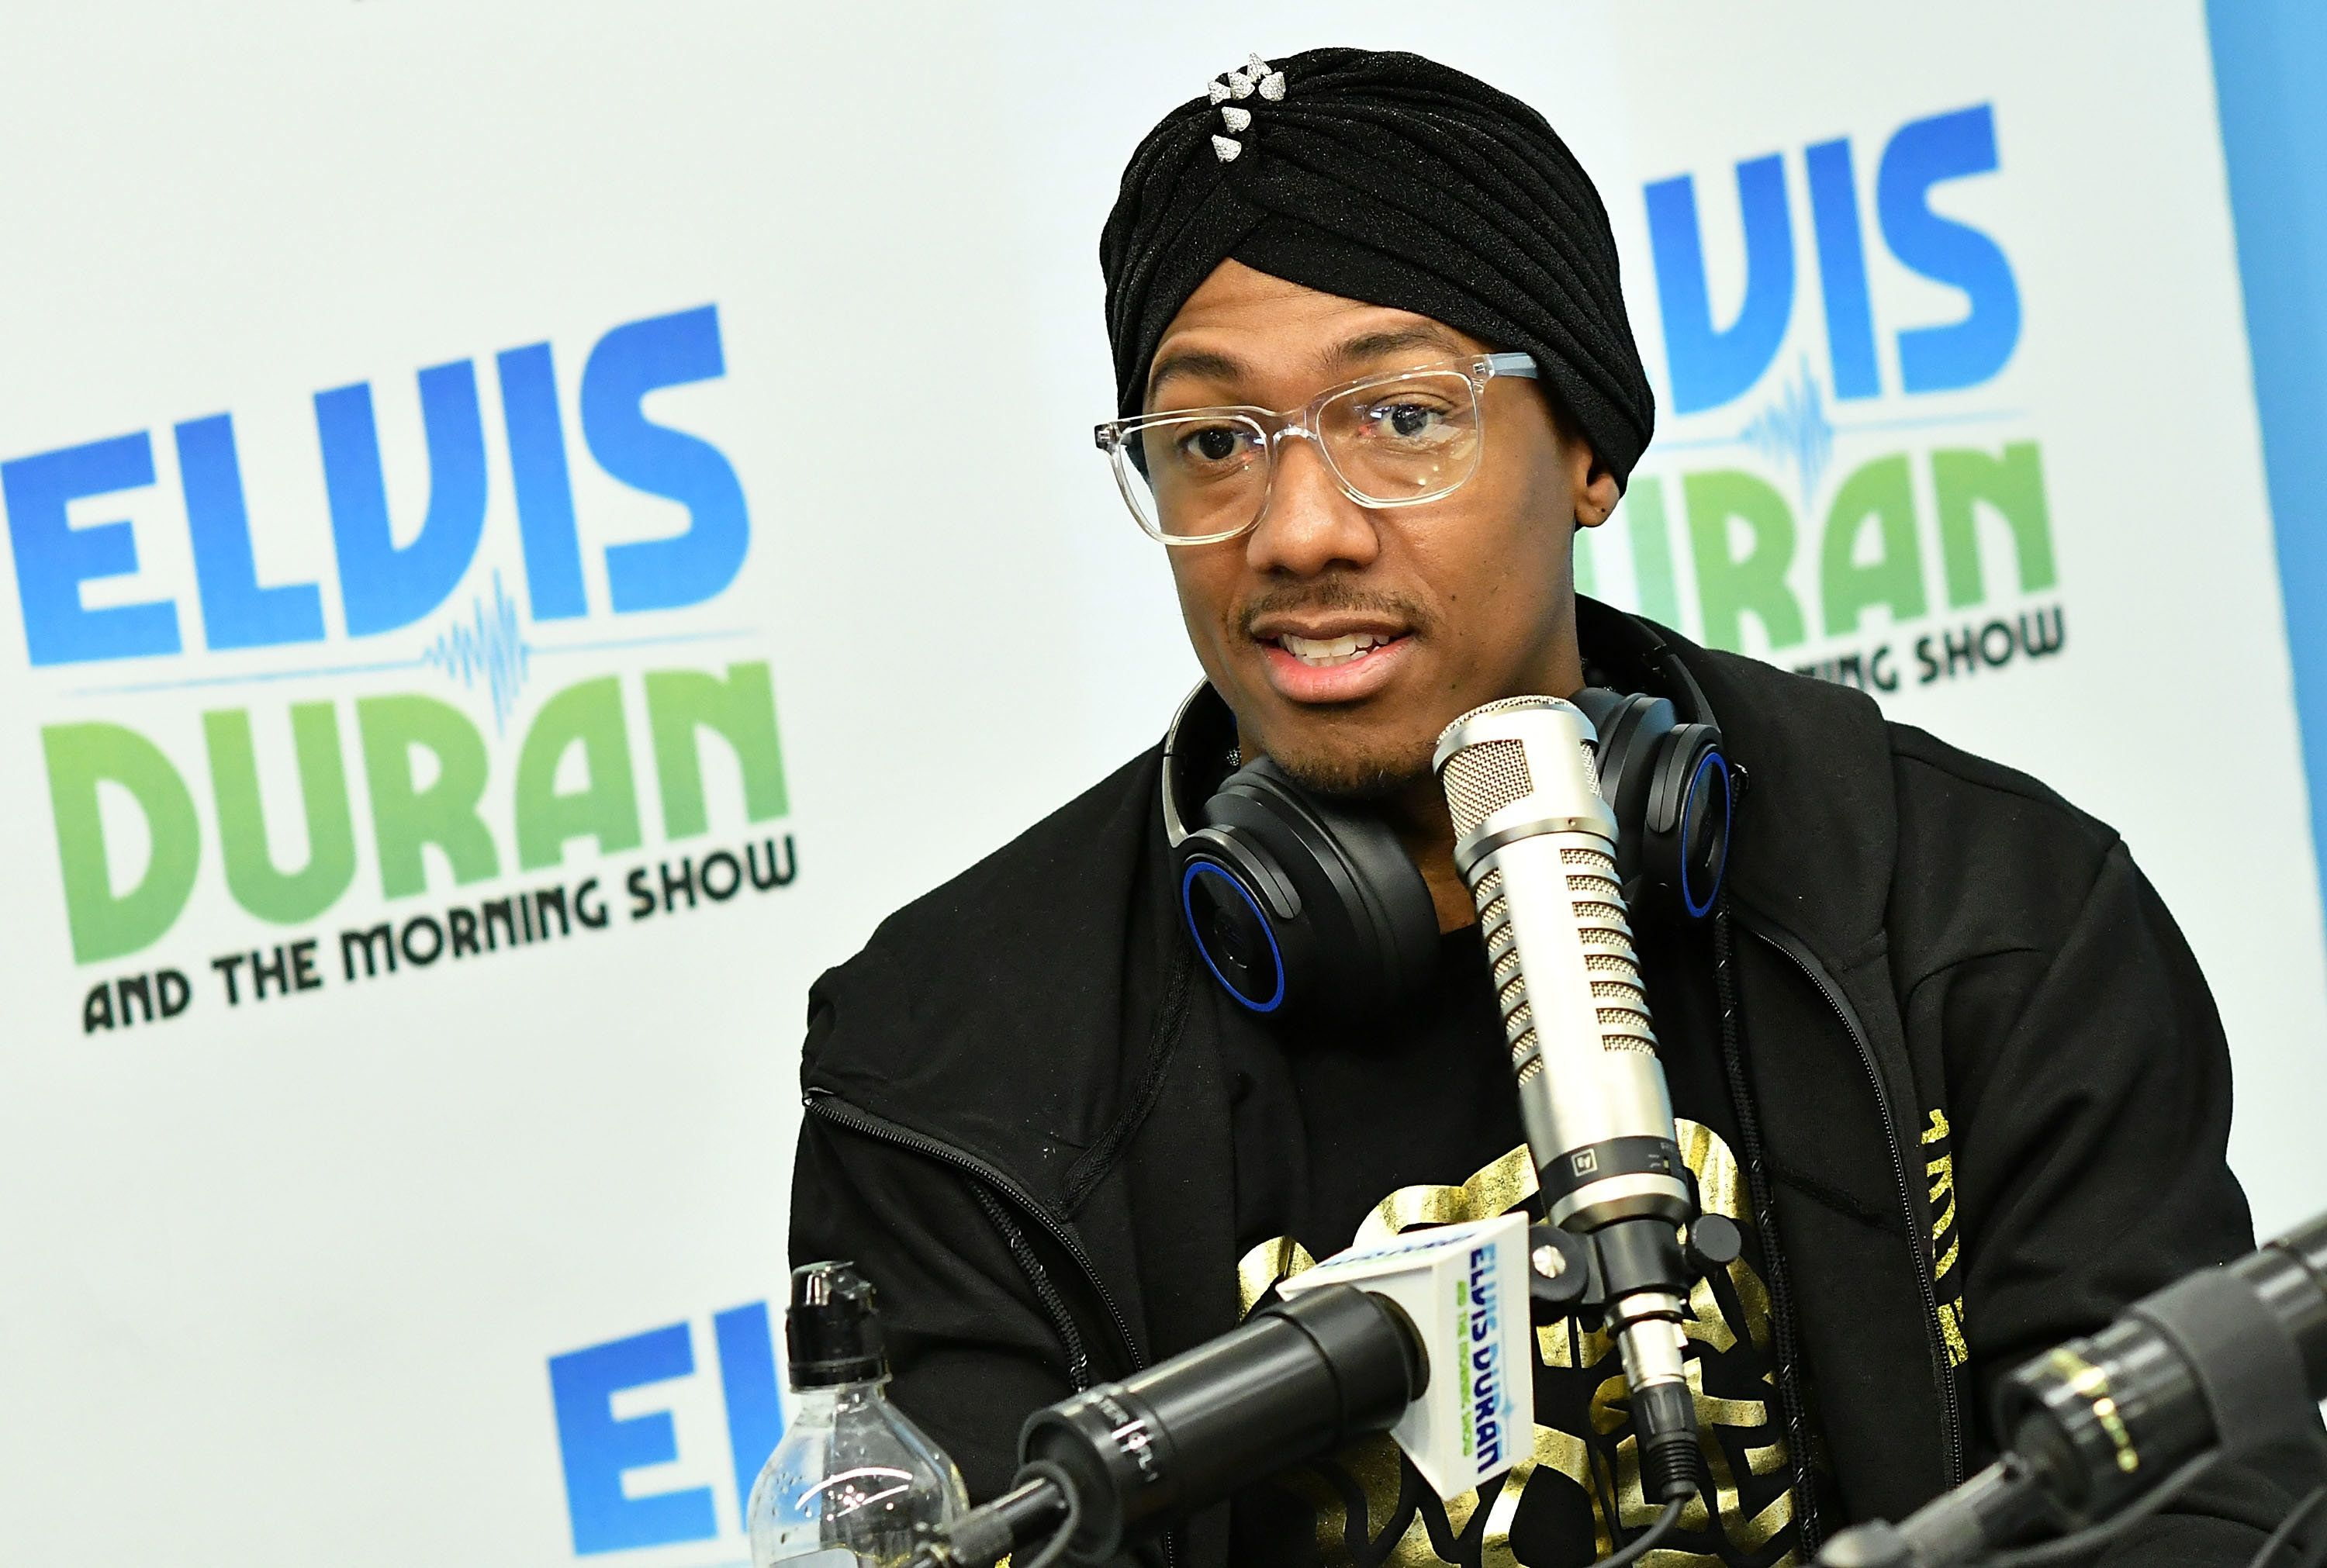 NEW YORK, NY - NOVEMBER 16:  (EXCLUSIVE COVERAGE) Rapper/TV personality Nick Cannon visits 'The Elvis Duran Z100 Morning Show' at Z100 Studio on November 16, 2016 in New York City.  (Photo by Slaven Vlasic/Getty Images)